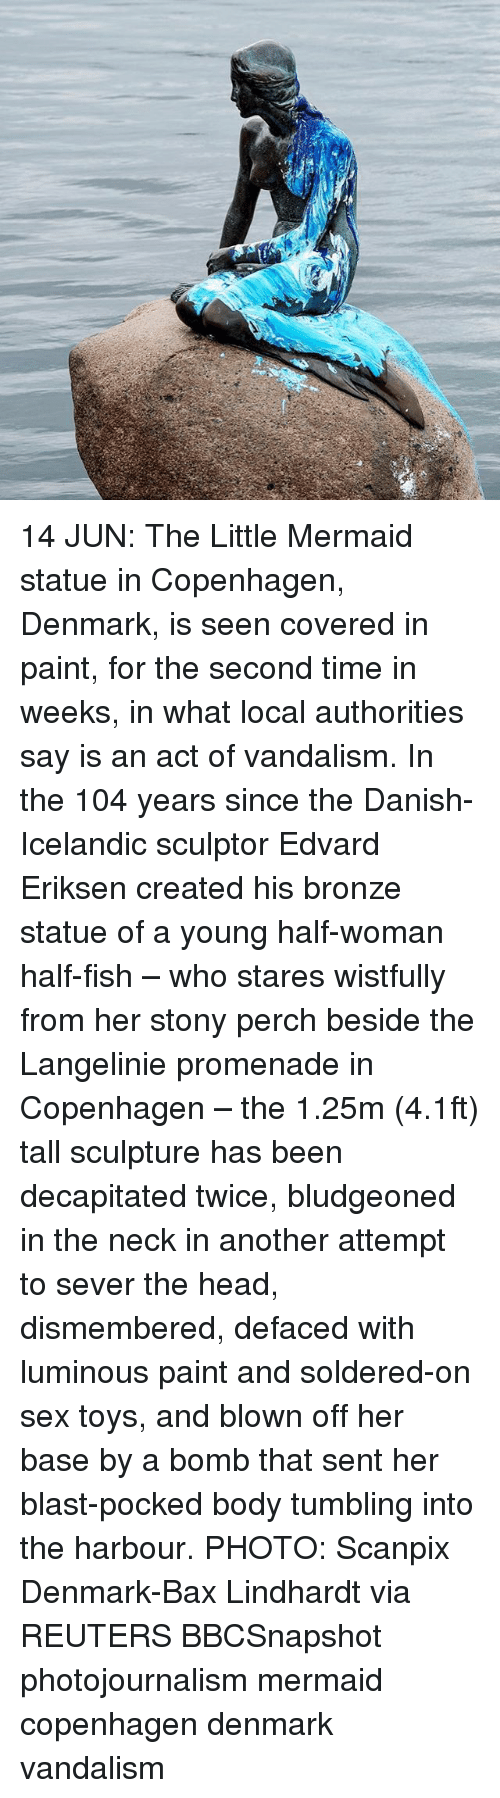 Icelandic: 14 JUN: The Little Mermaid statue in Copenhagen, Denmark, is seen covered in paint, for the second time in weeks, in what local authorities say is an act of vandalism. In the 104 years since the Danish-Icelandic sculptor Edvard Eriksen created his bronze statue of a young half-woman half-fish – who stares wistfully from her stony perch beside the Langelinie promenade in Copenhagen – the 1.25m (4.1ft) tall sculpture has been decapitated twice, bludgeoned in the neck in another attempt to sever the head, dismembered, defaced with luminous paint and soldered-on sex toys, and blown off her base by a bomb that sent her blast-pocked body tumbling into the harbour. PHOTO: Scanpix Denmark-Bax Lindhardt via REUTERS BBCSnapshot photojournalism mermaid copenhagen denmark vandalism